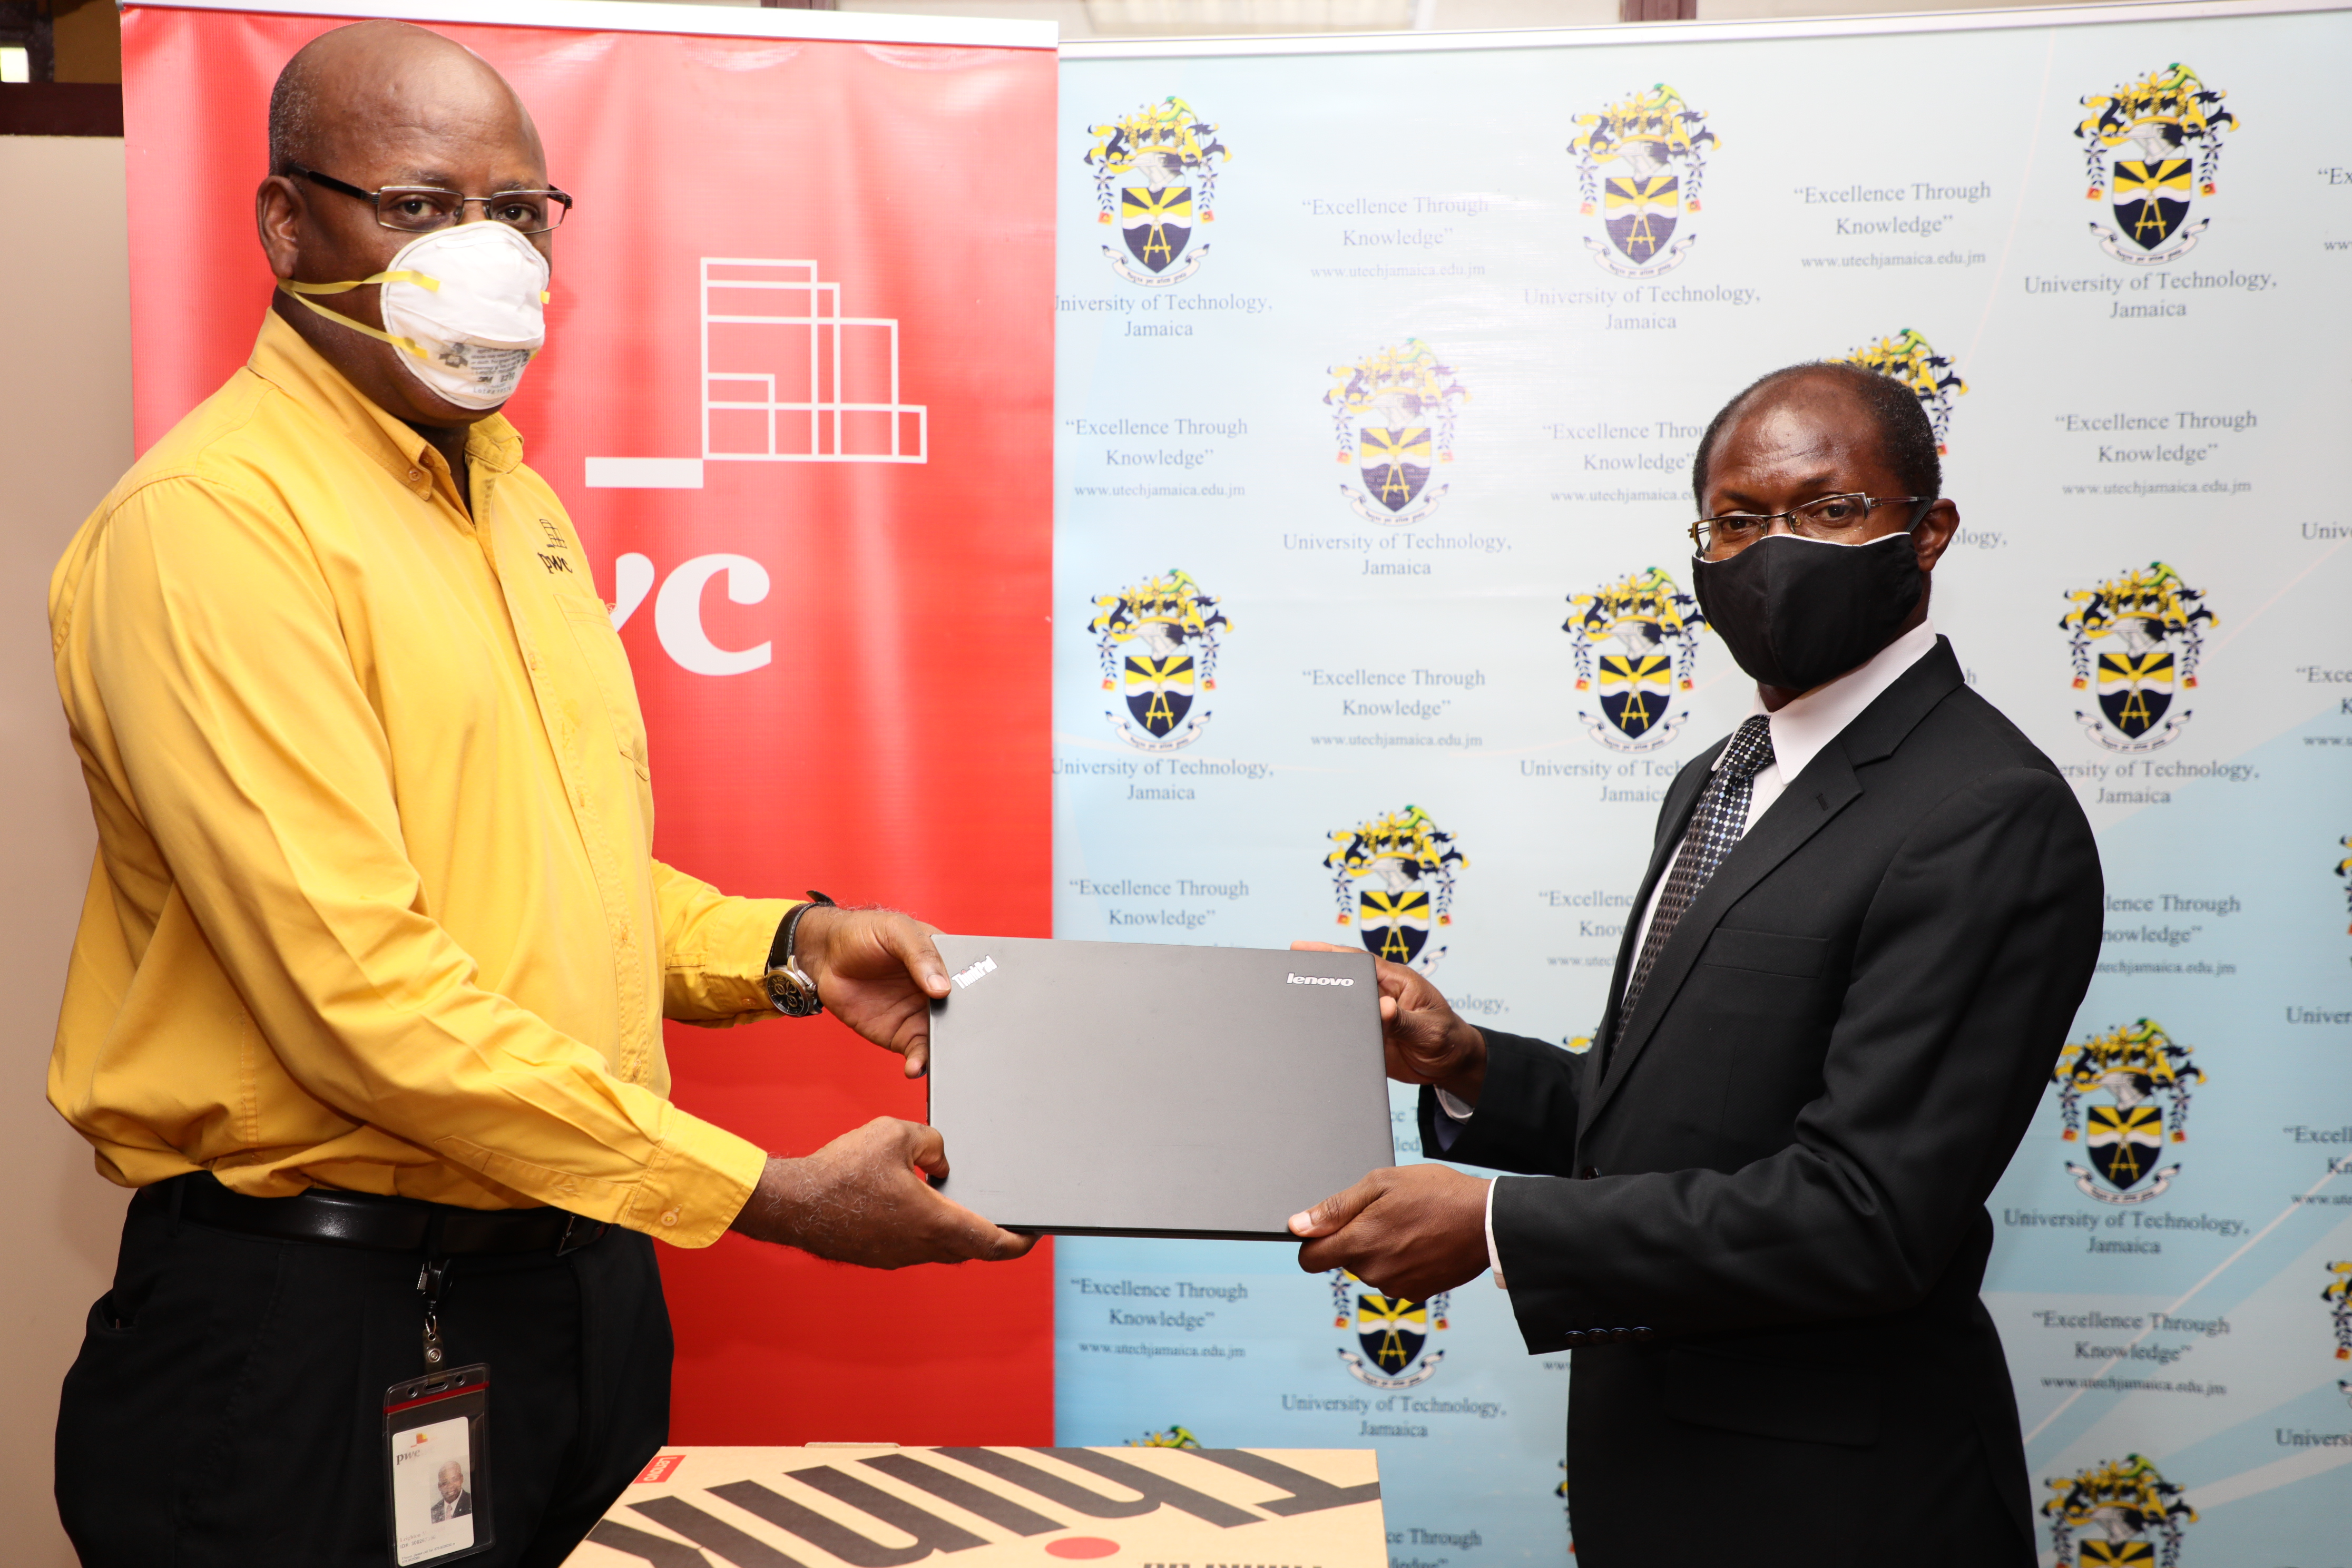 PricewaterhouseCoopers Donates Laptops to Support Students in Need